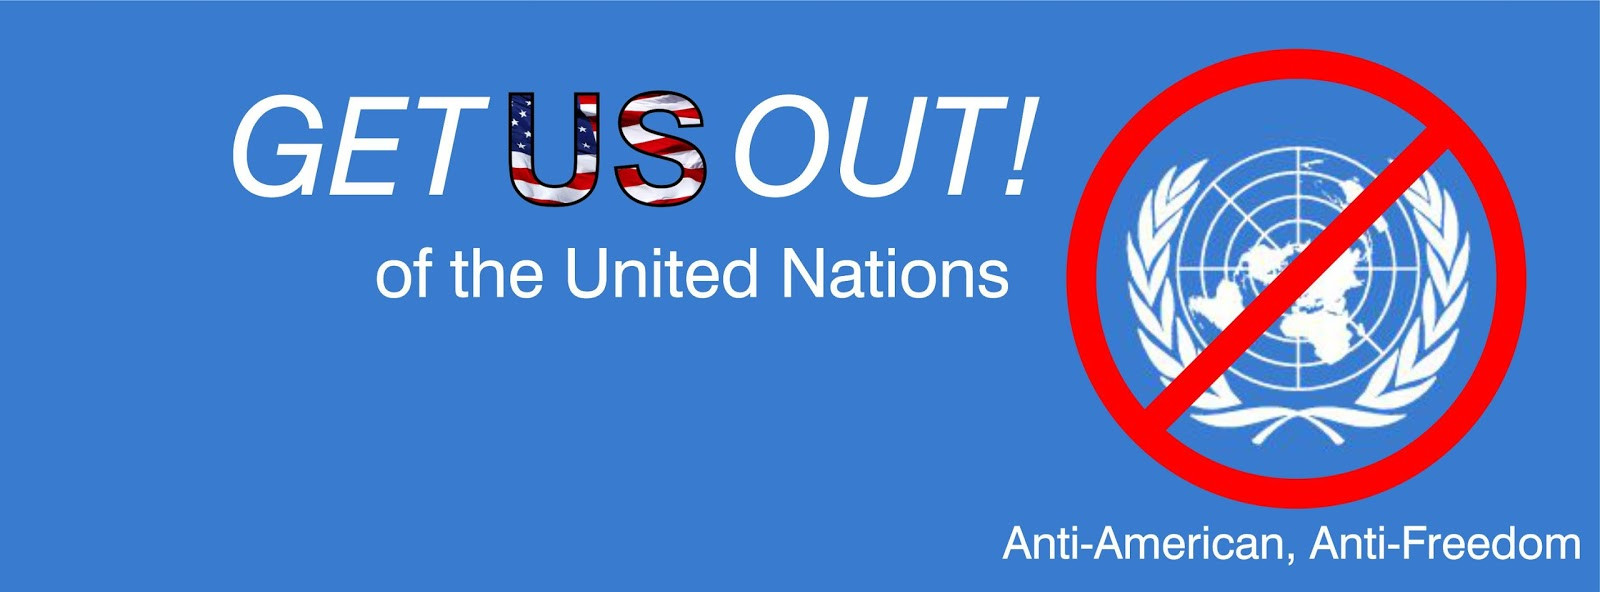 GET-US-OUT_of_the_United_Nations_1.jpg